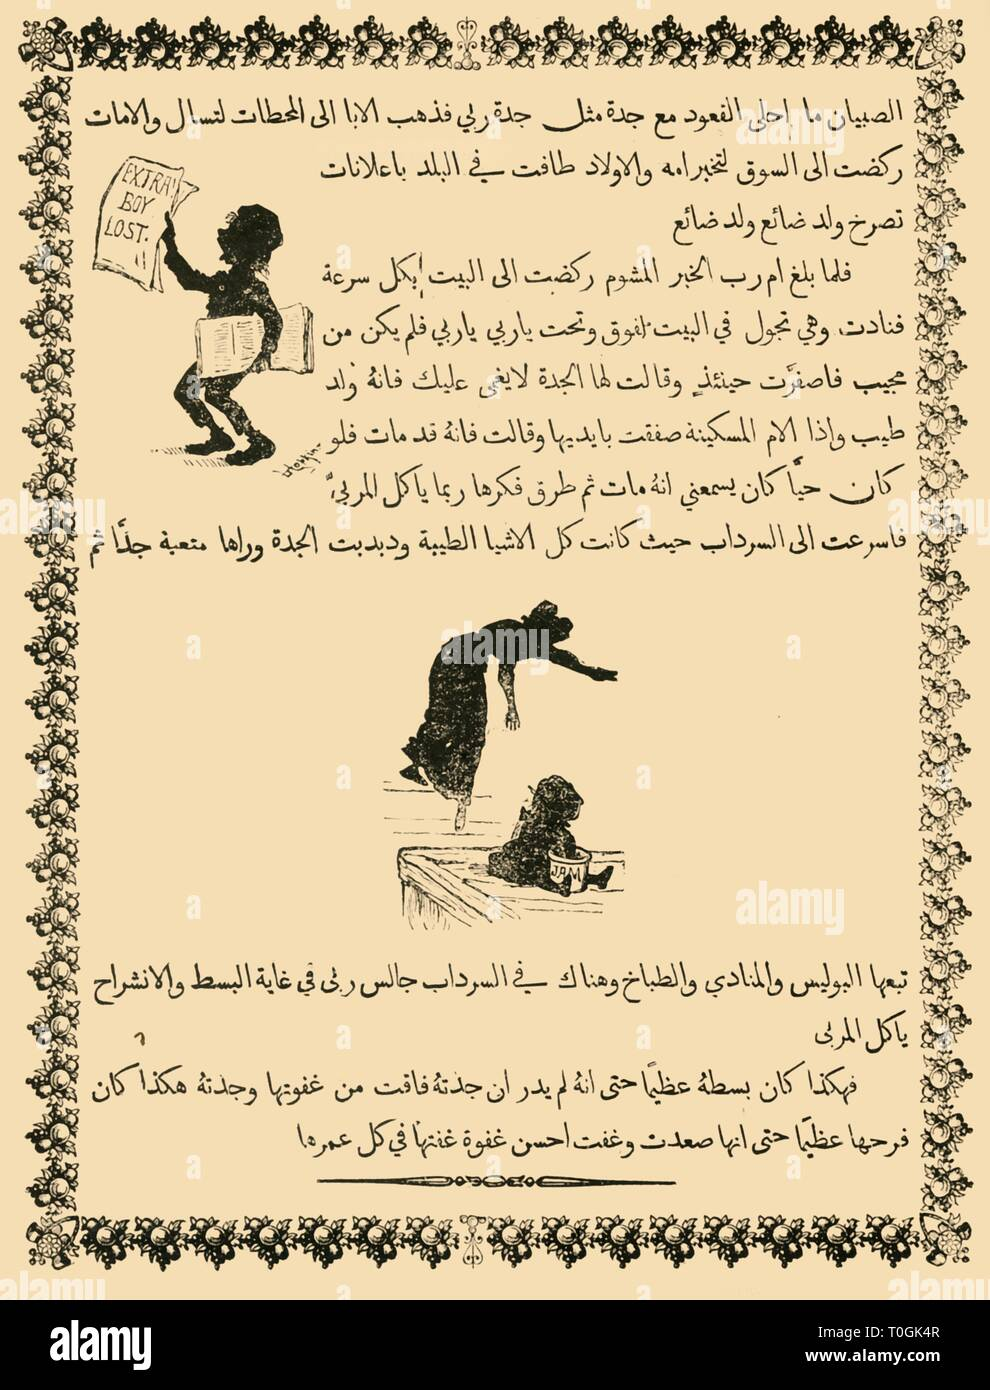 """'A Reduced Fac-Simile of a Page from """"St. Nicholas"""" in Arabic', 1883. From """"St. Nicholas: Volume X. Part I., November 1882, to May 1883"""". [Scribner & Co., New York, 1883] - Stock Image"""